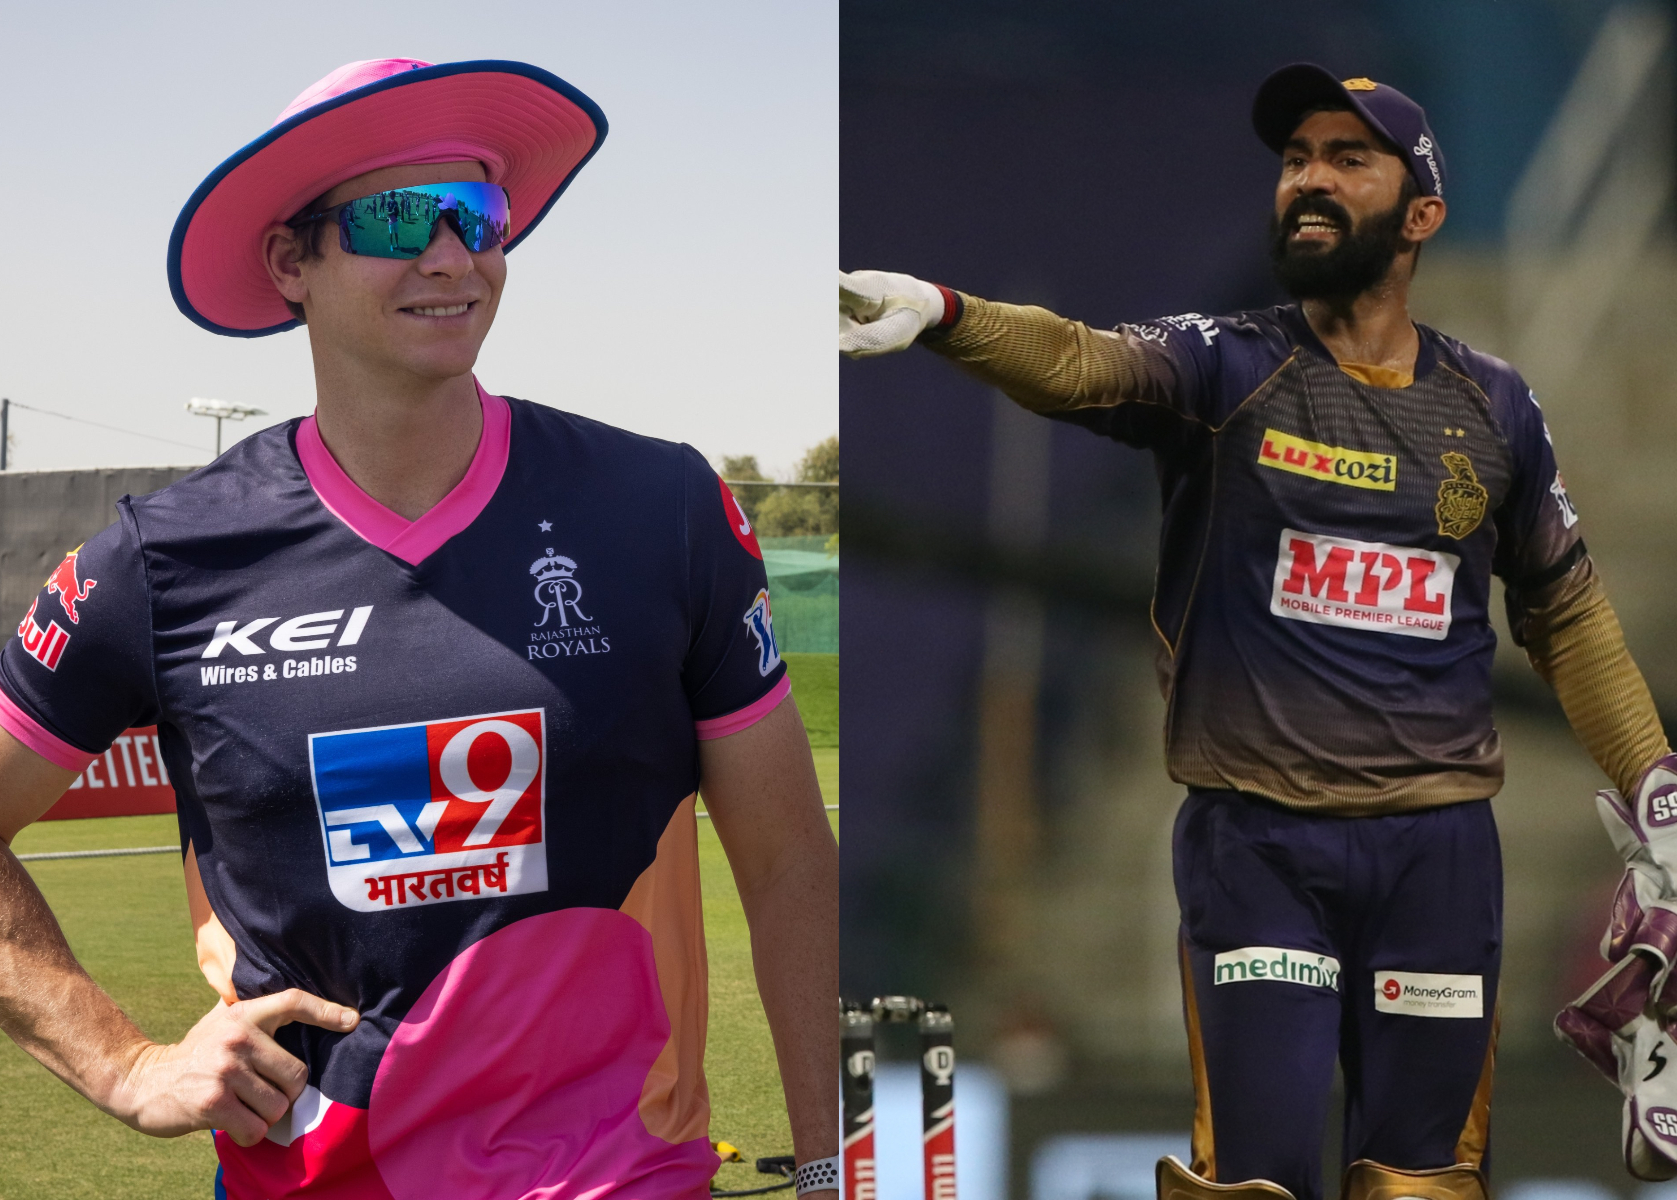 RR has won both their games, while KKR has won one and lost one | IANS